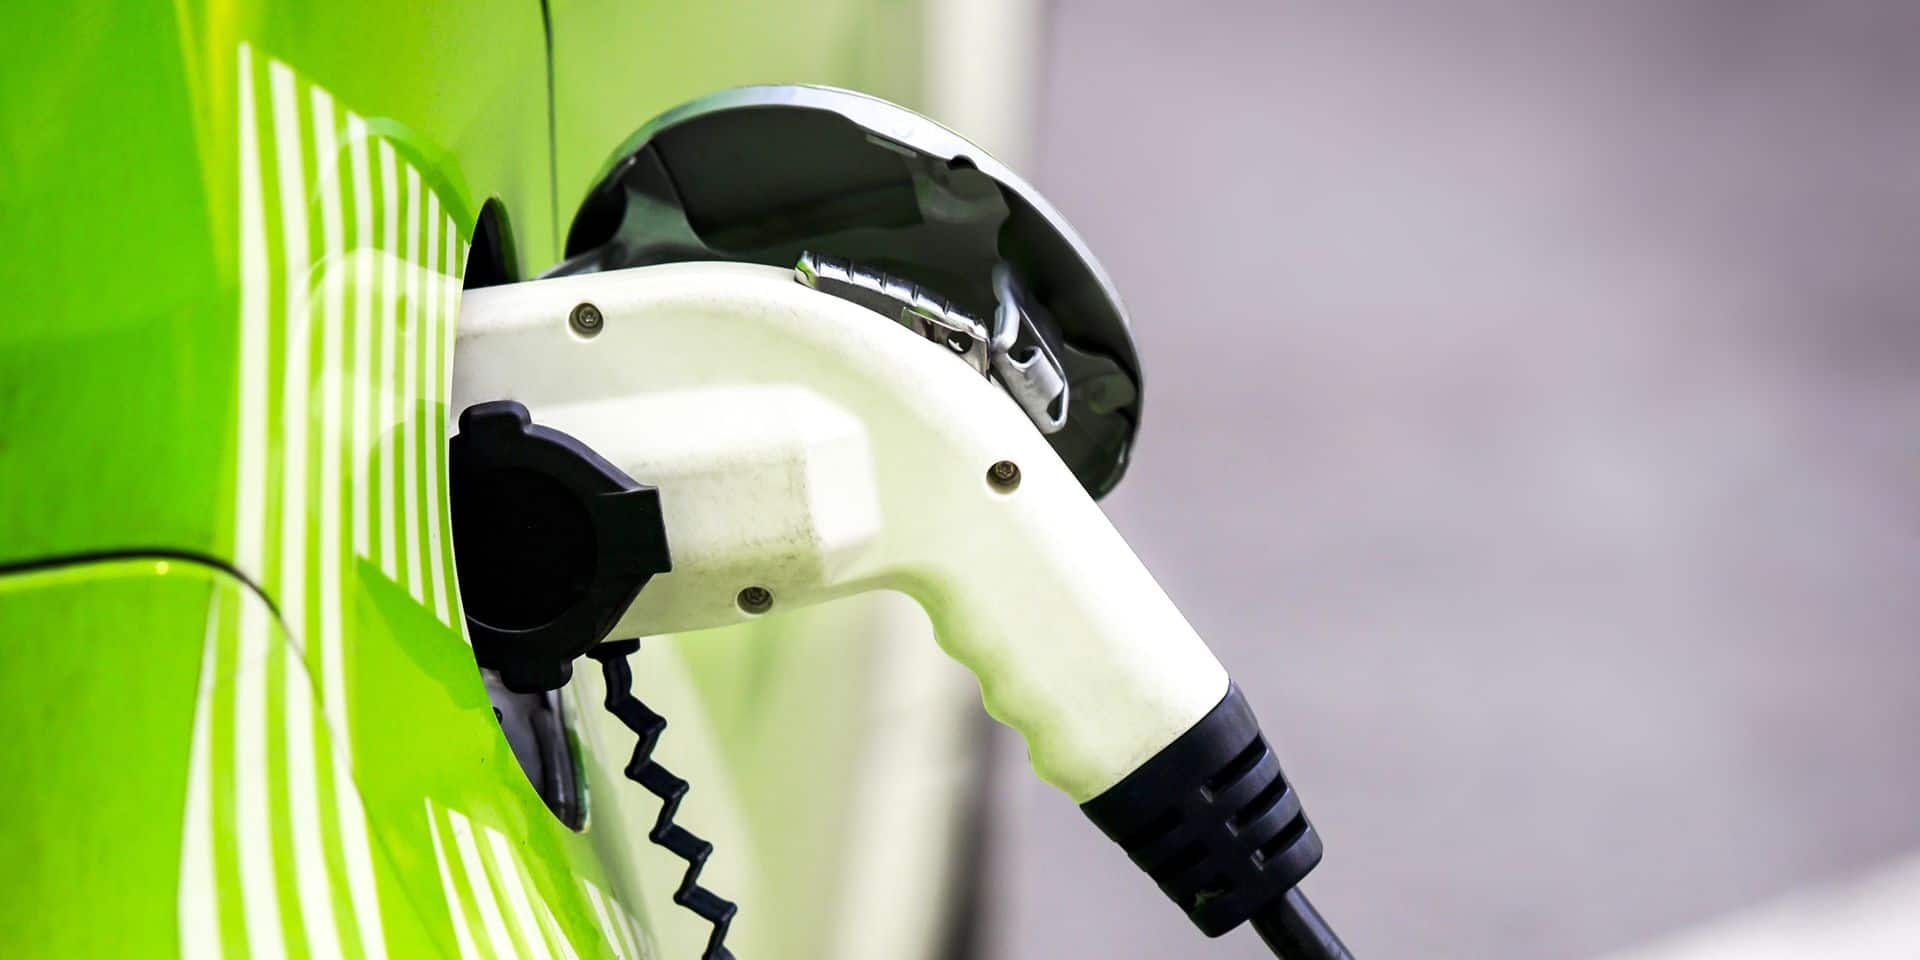 Loading,Energy,Of,An,Electric,Car